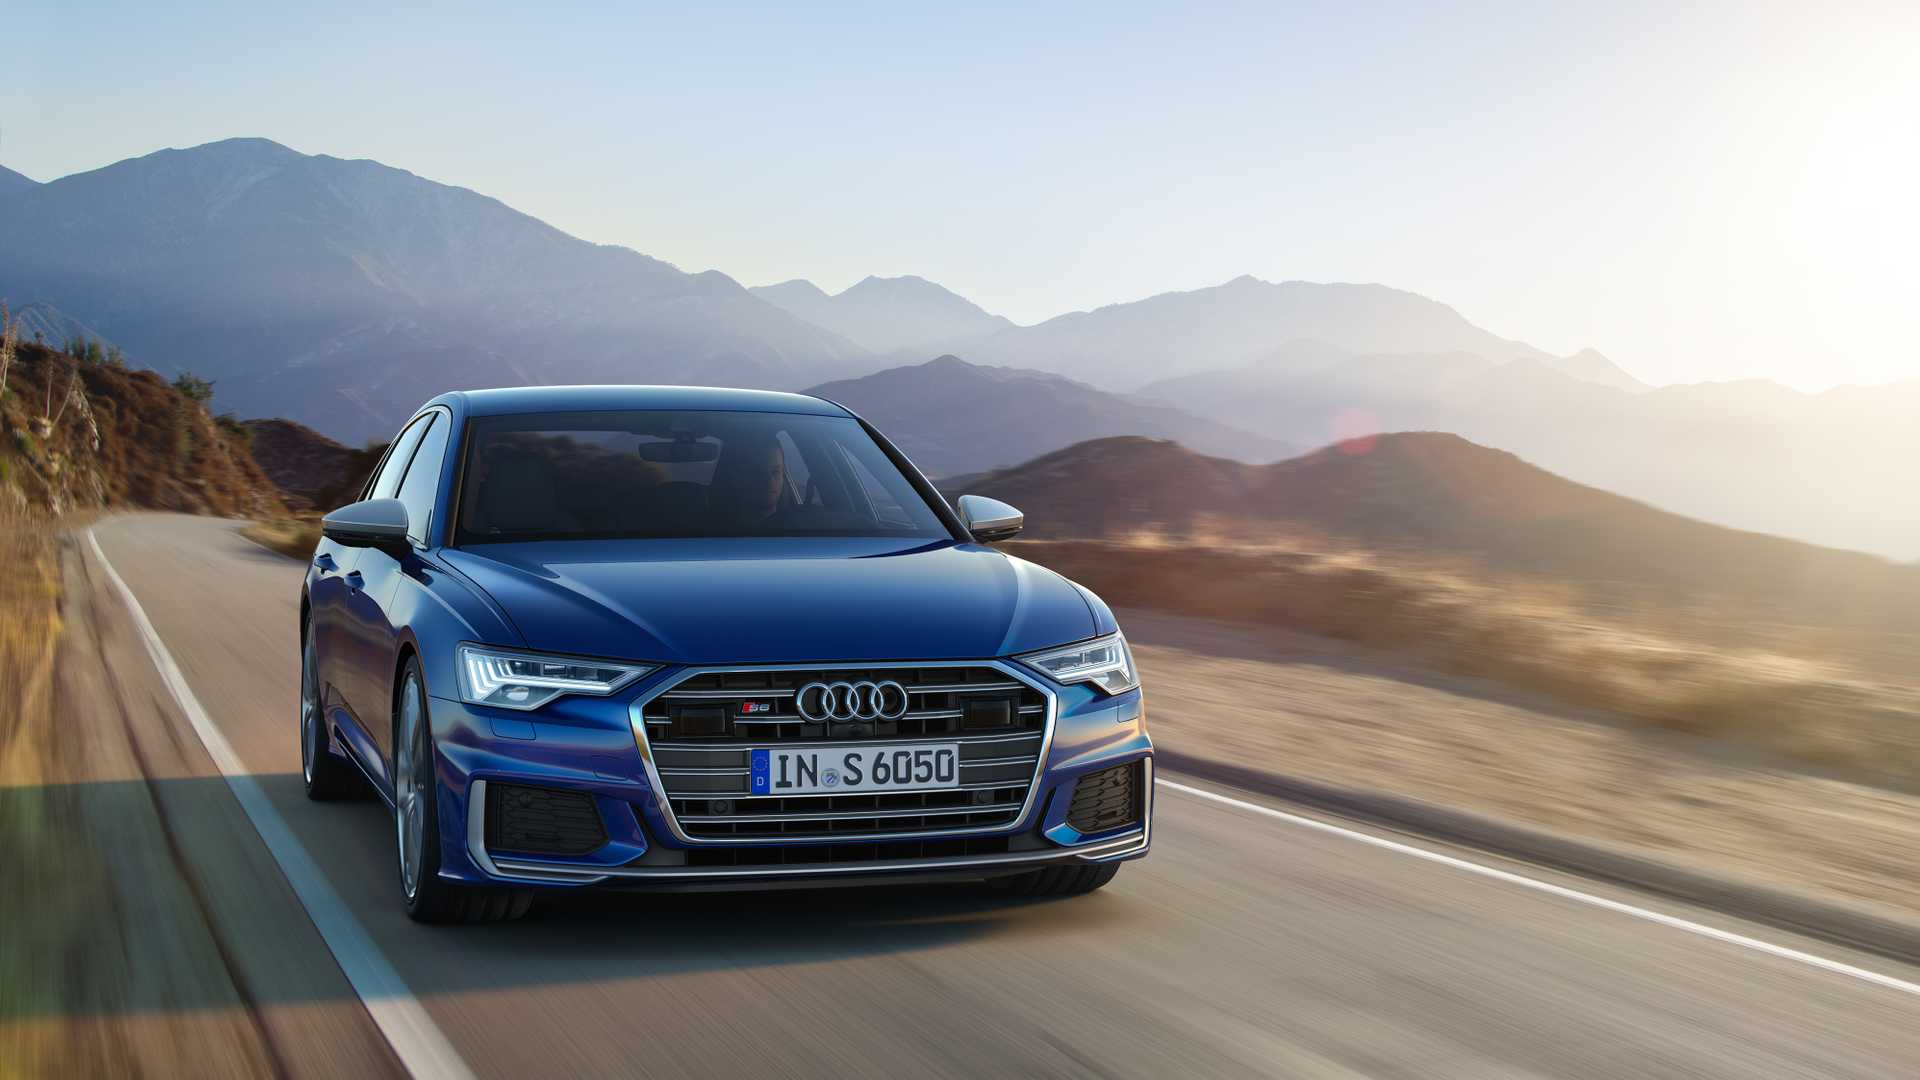 54 The Best 2020 Audi S6 Redesign